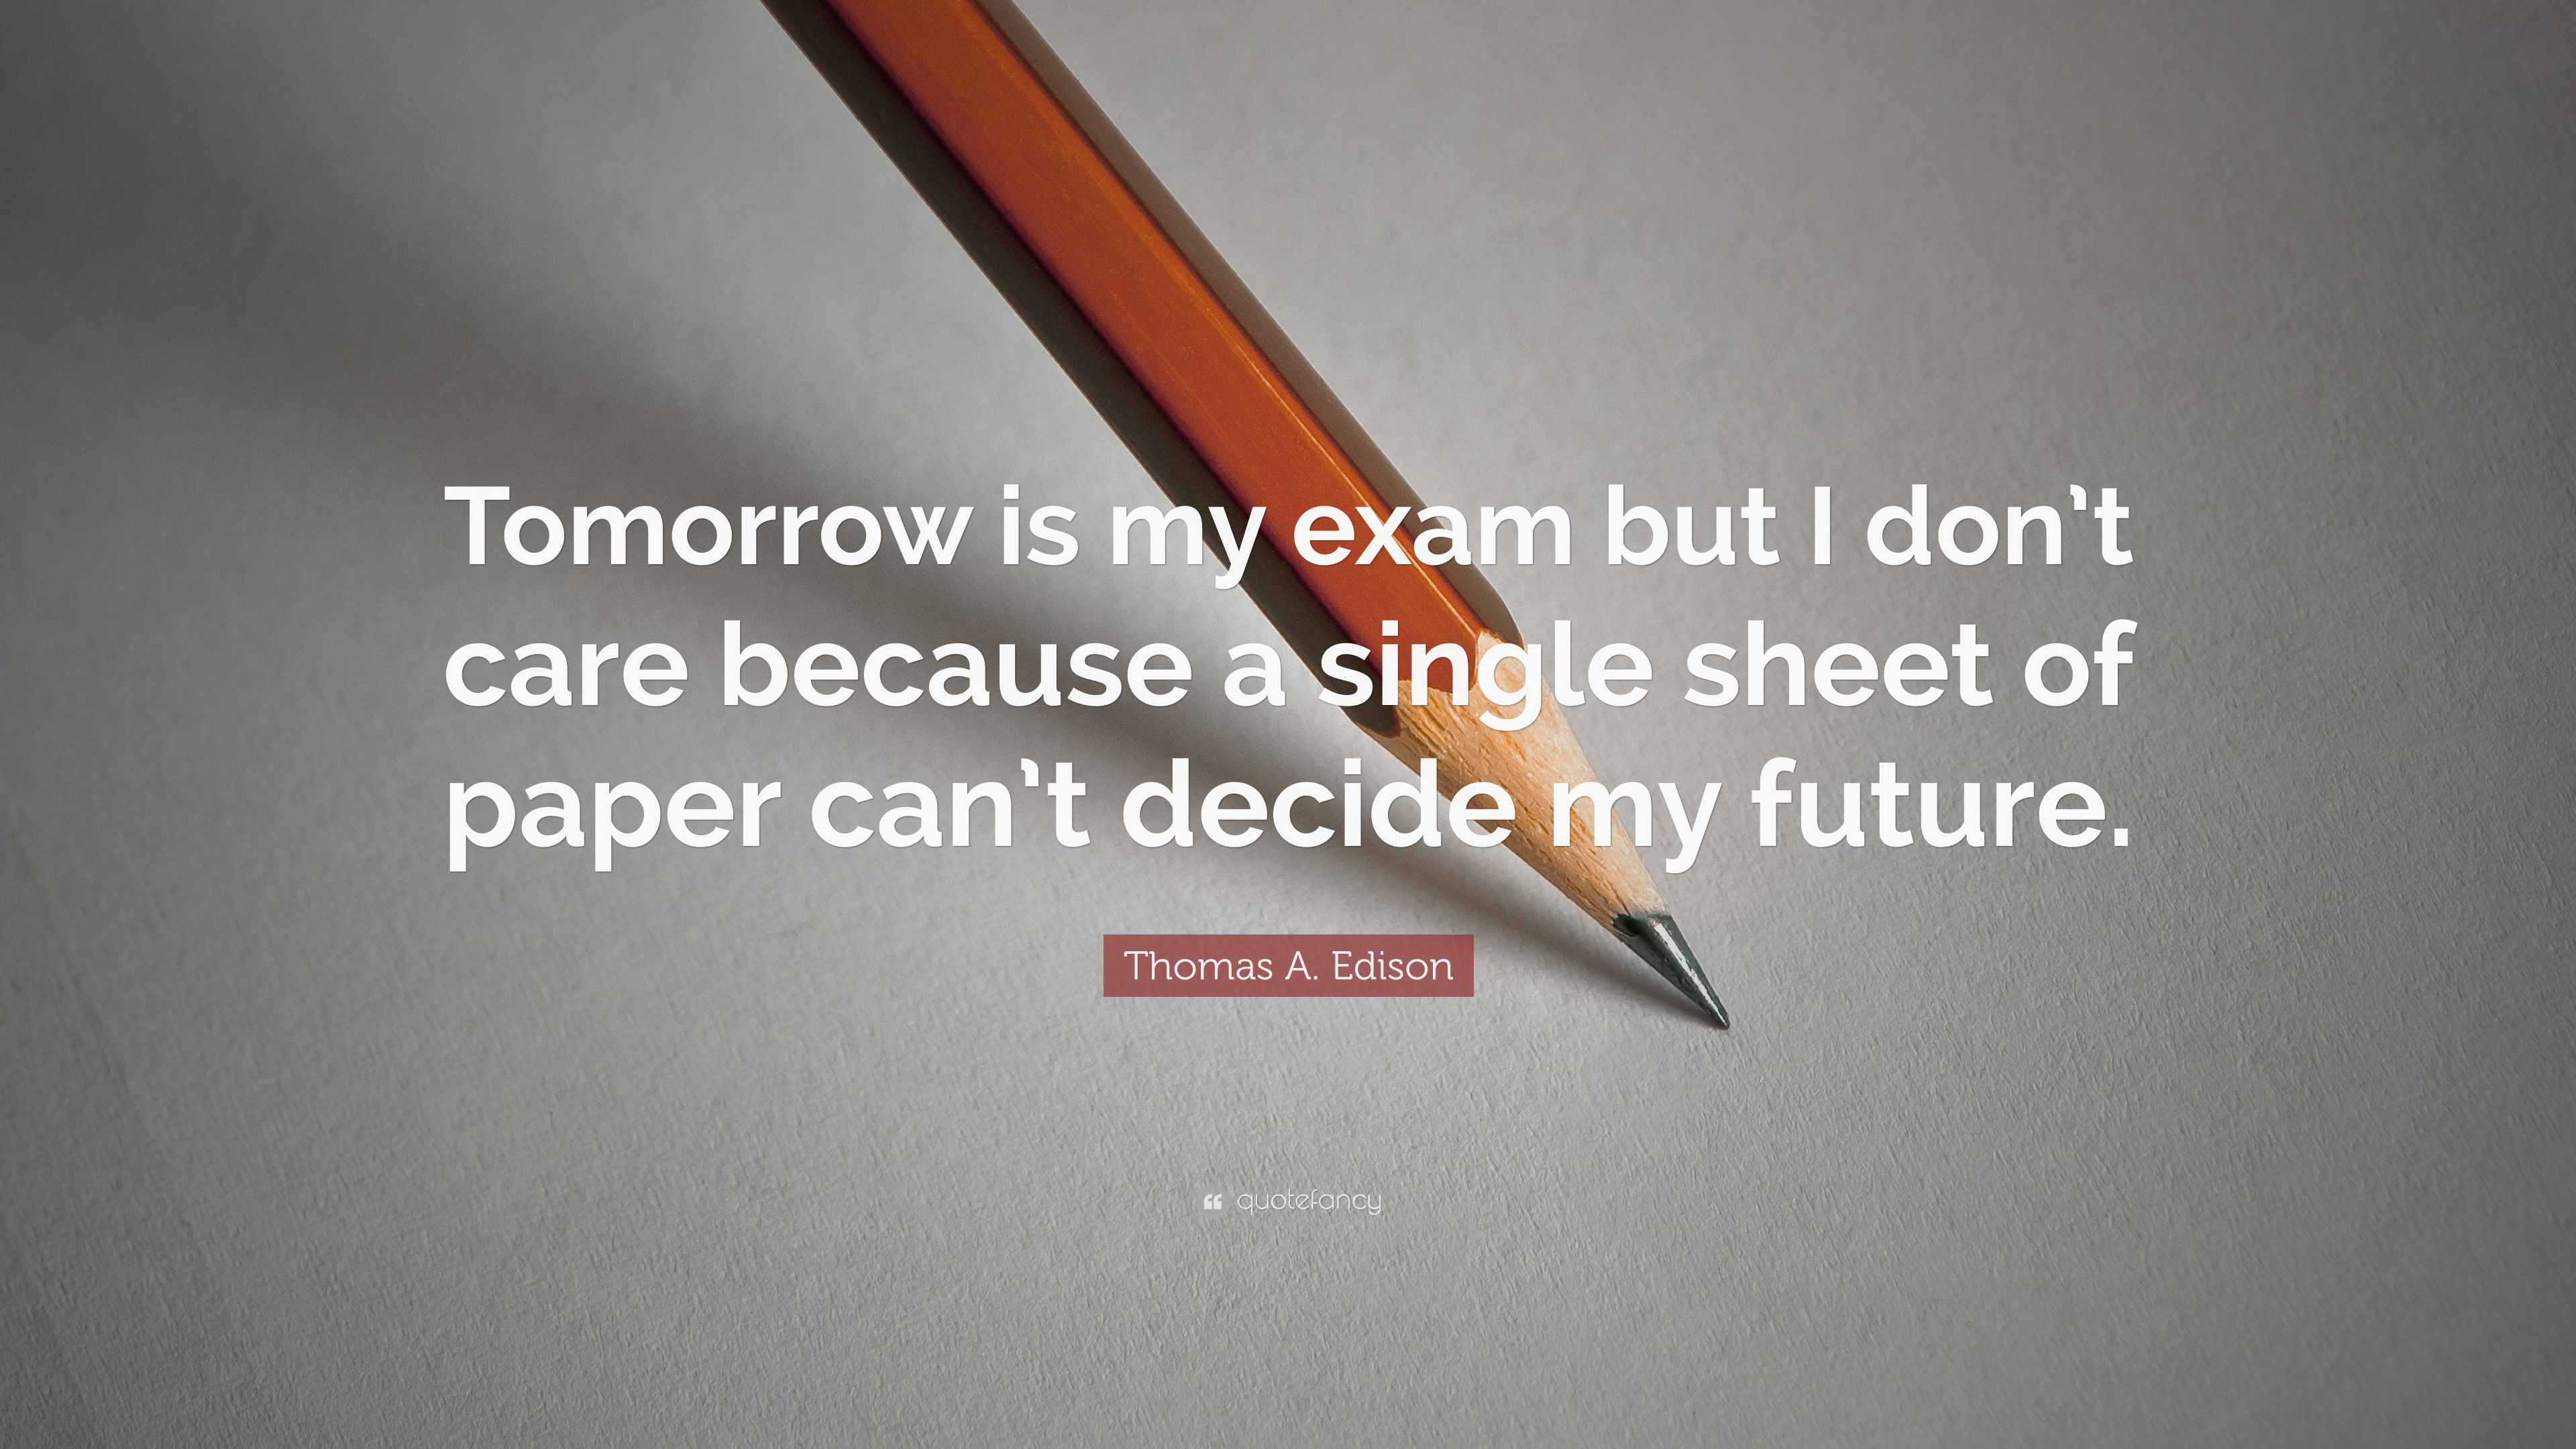 Great Thomas A. Edison Quote: U201cTomorrow Is My Exam But I Donu0027t